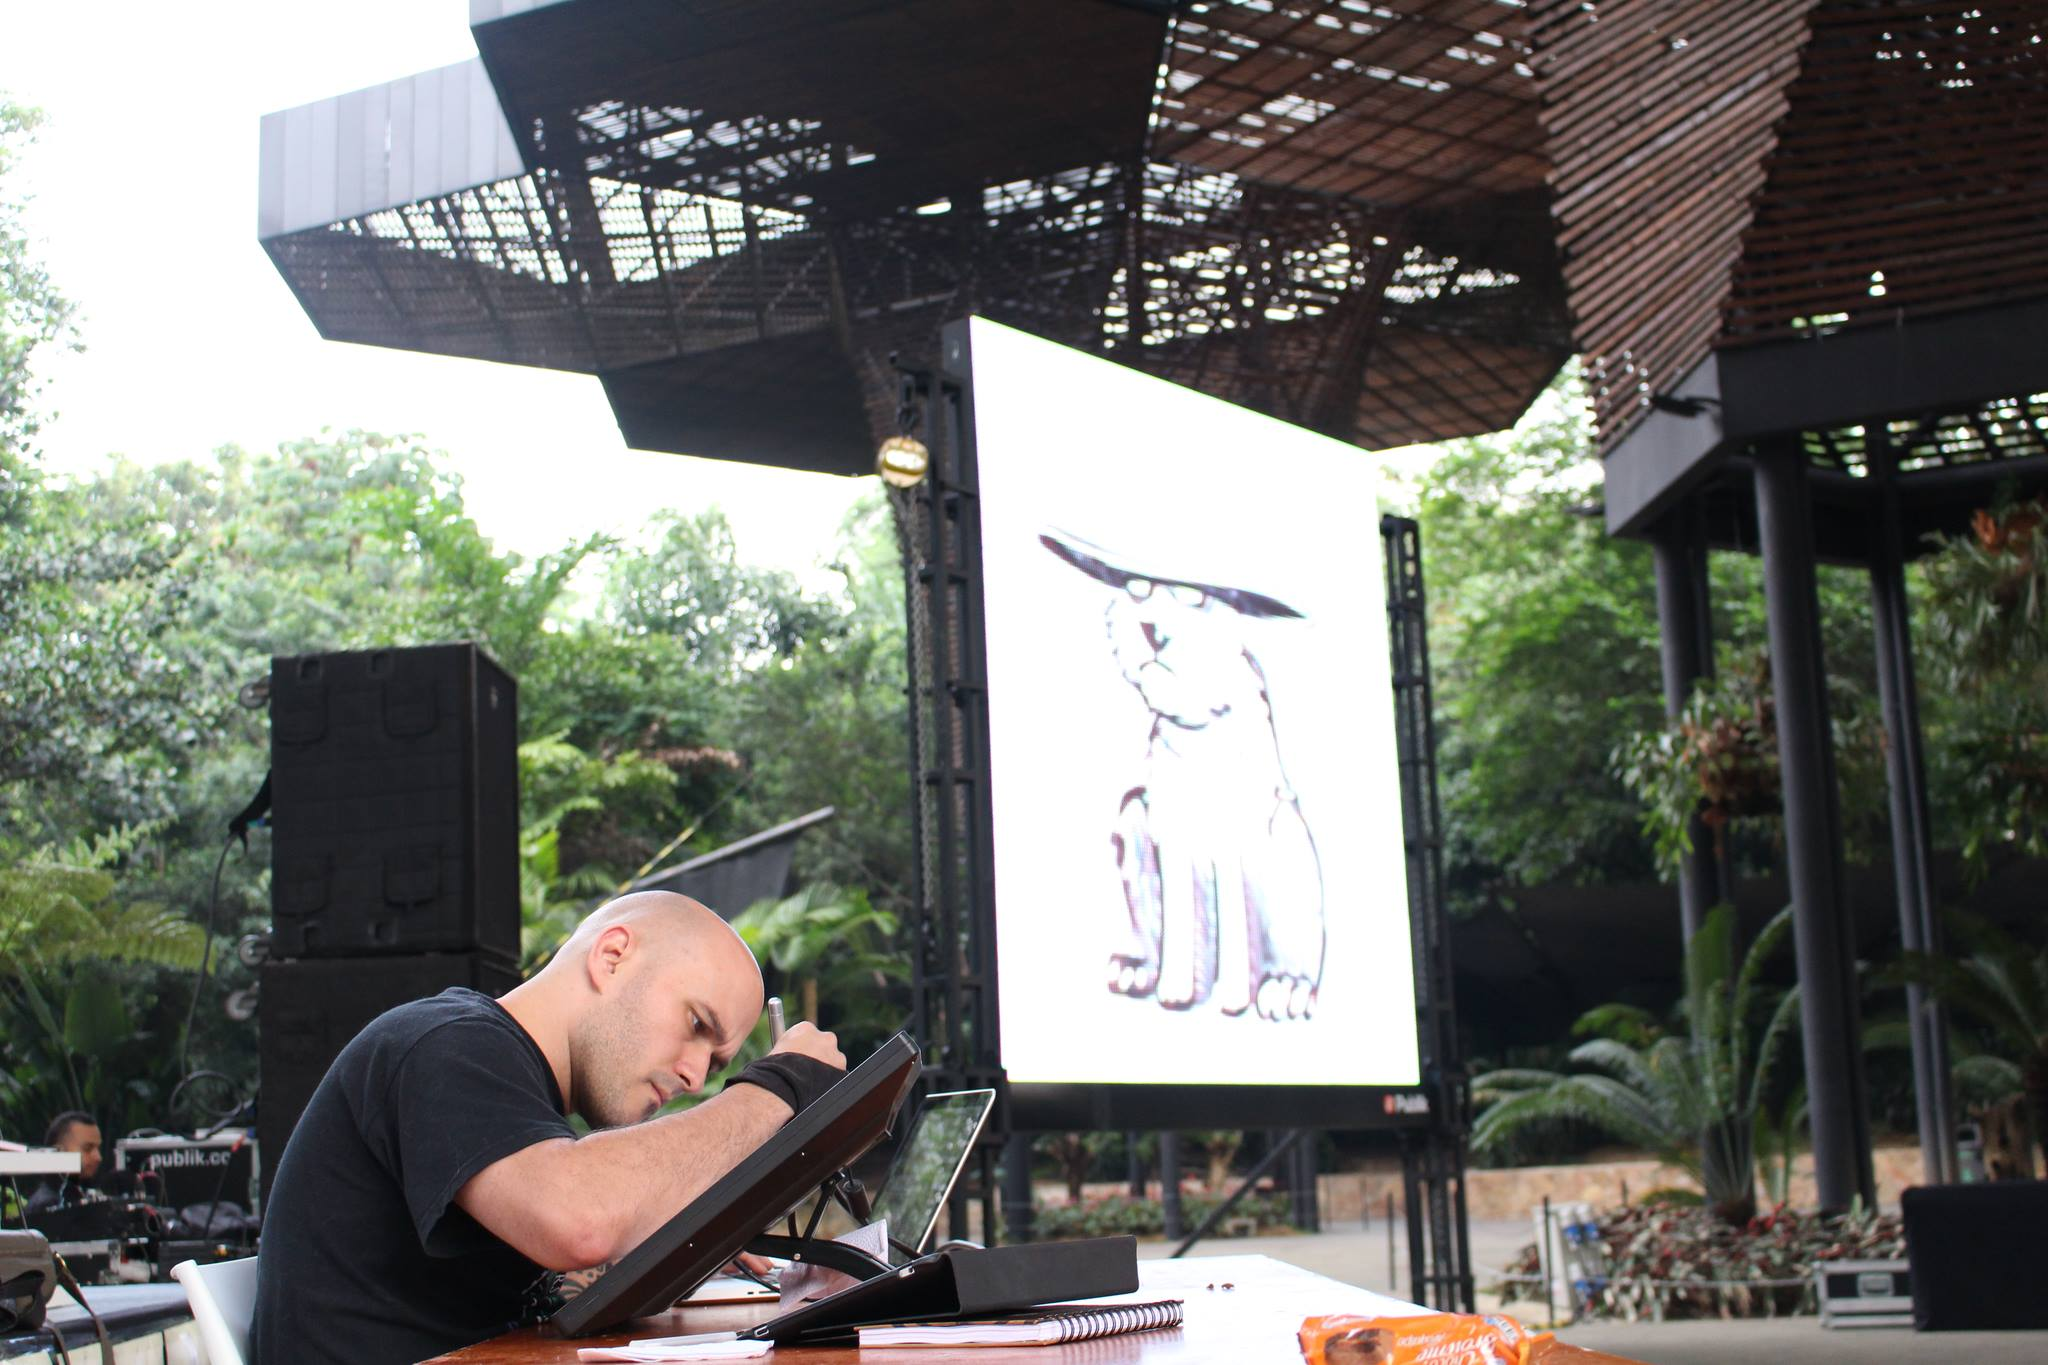 Fantasy and Scifi artist  O Abnormal (Sergio Villa-Isaza)  doing a live artwork at Fractal 13'